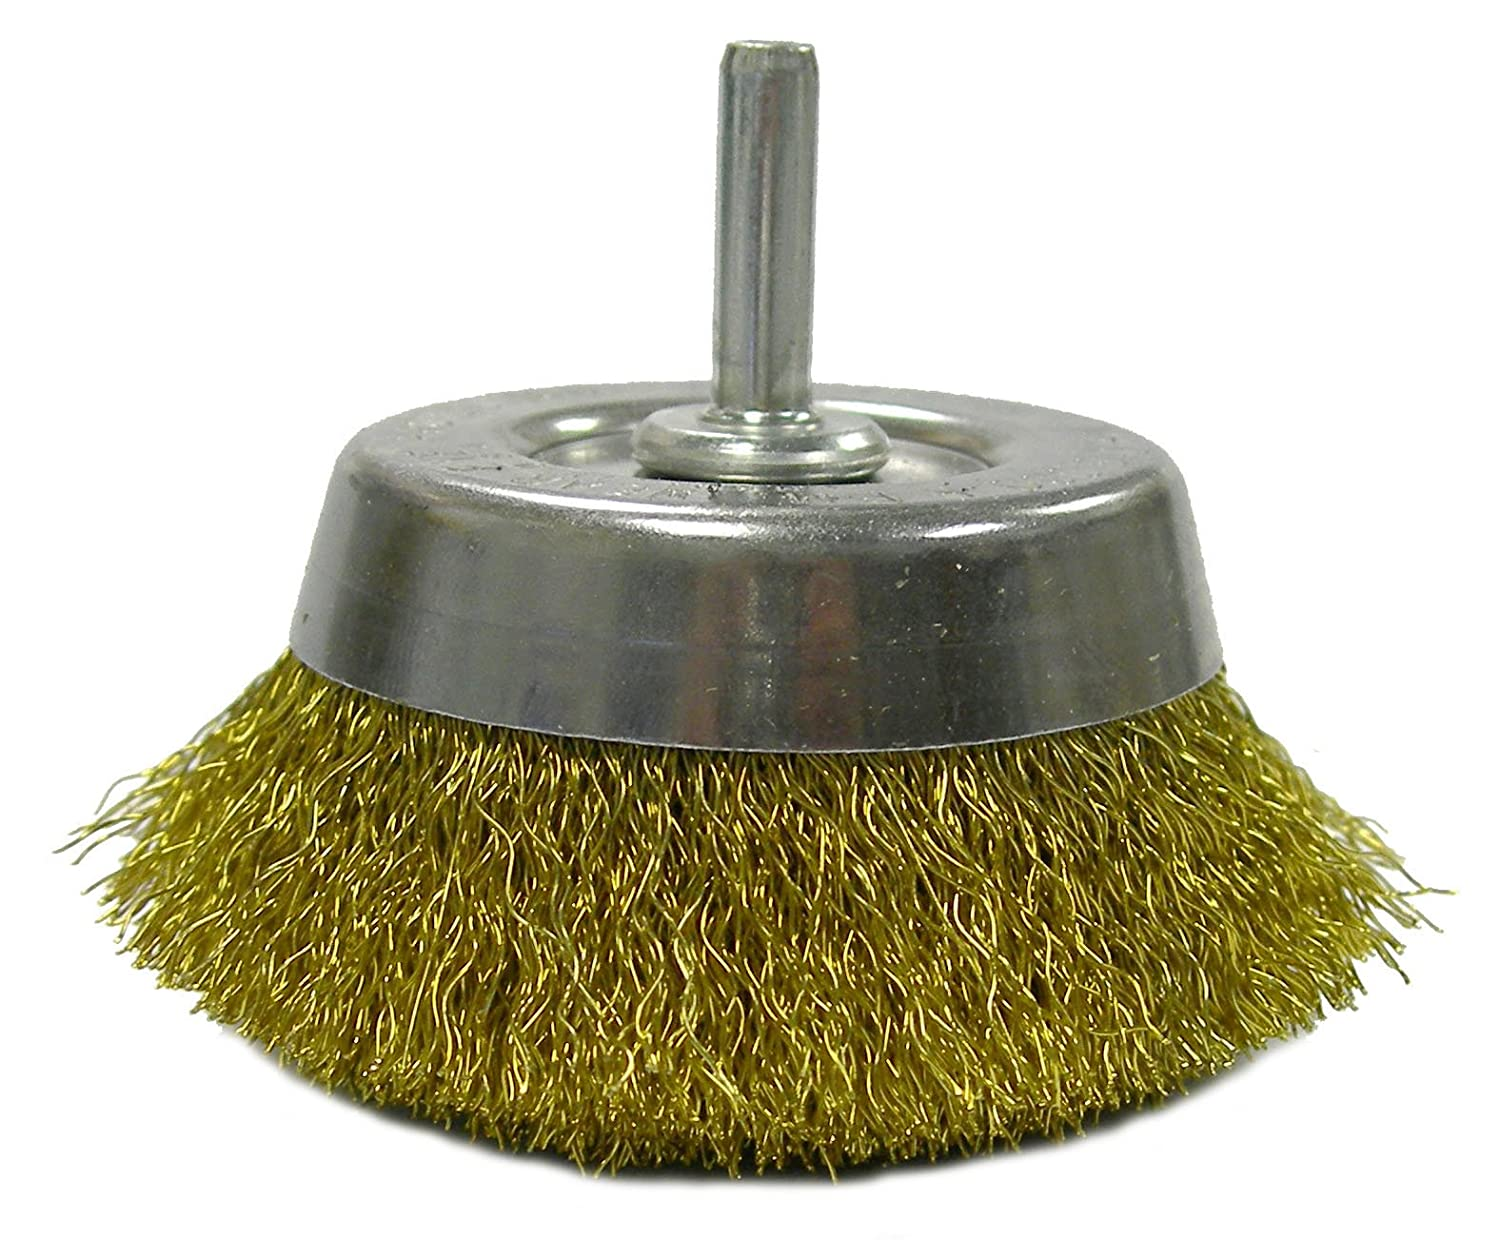 Weiler 14311 Crimped Wire Utility Cup Brush, 2-3/4', 0.118' Brass Fill, 1/4' Stem